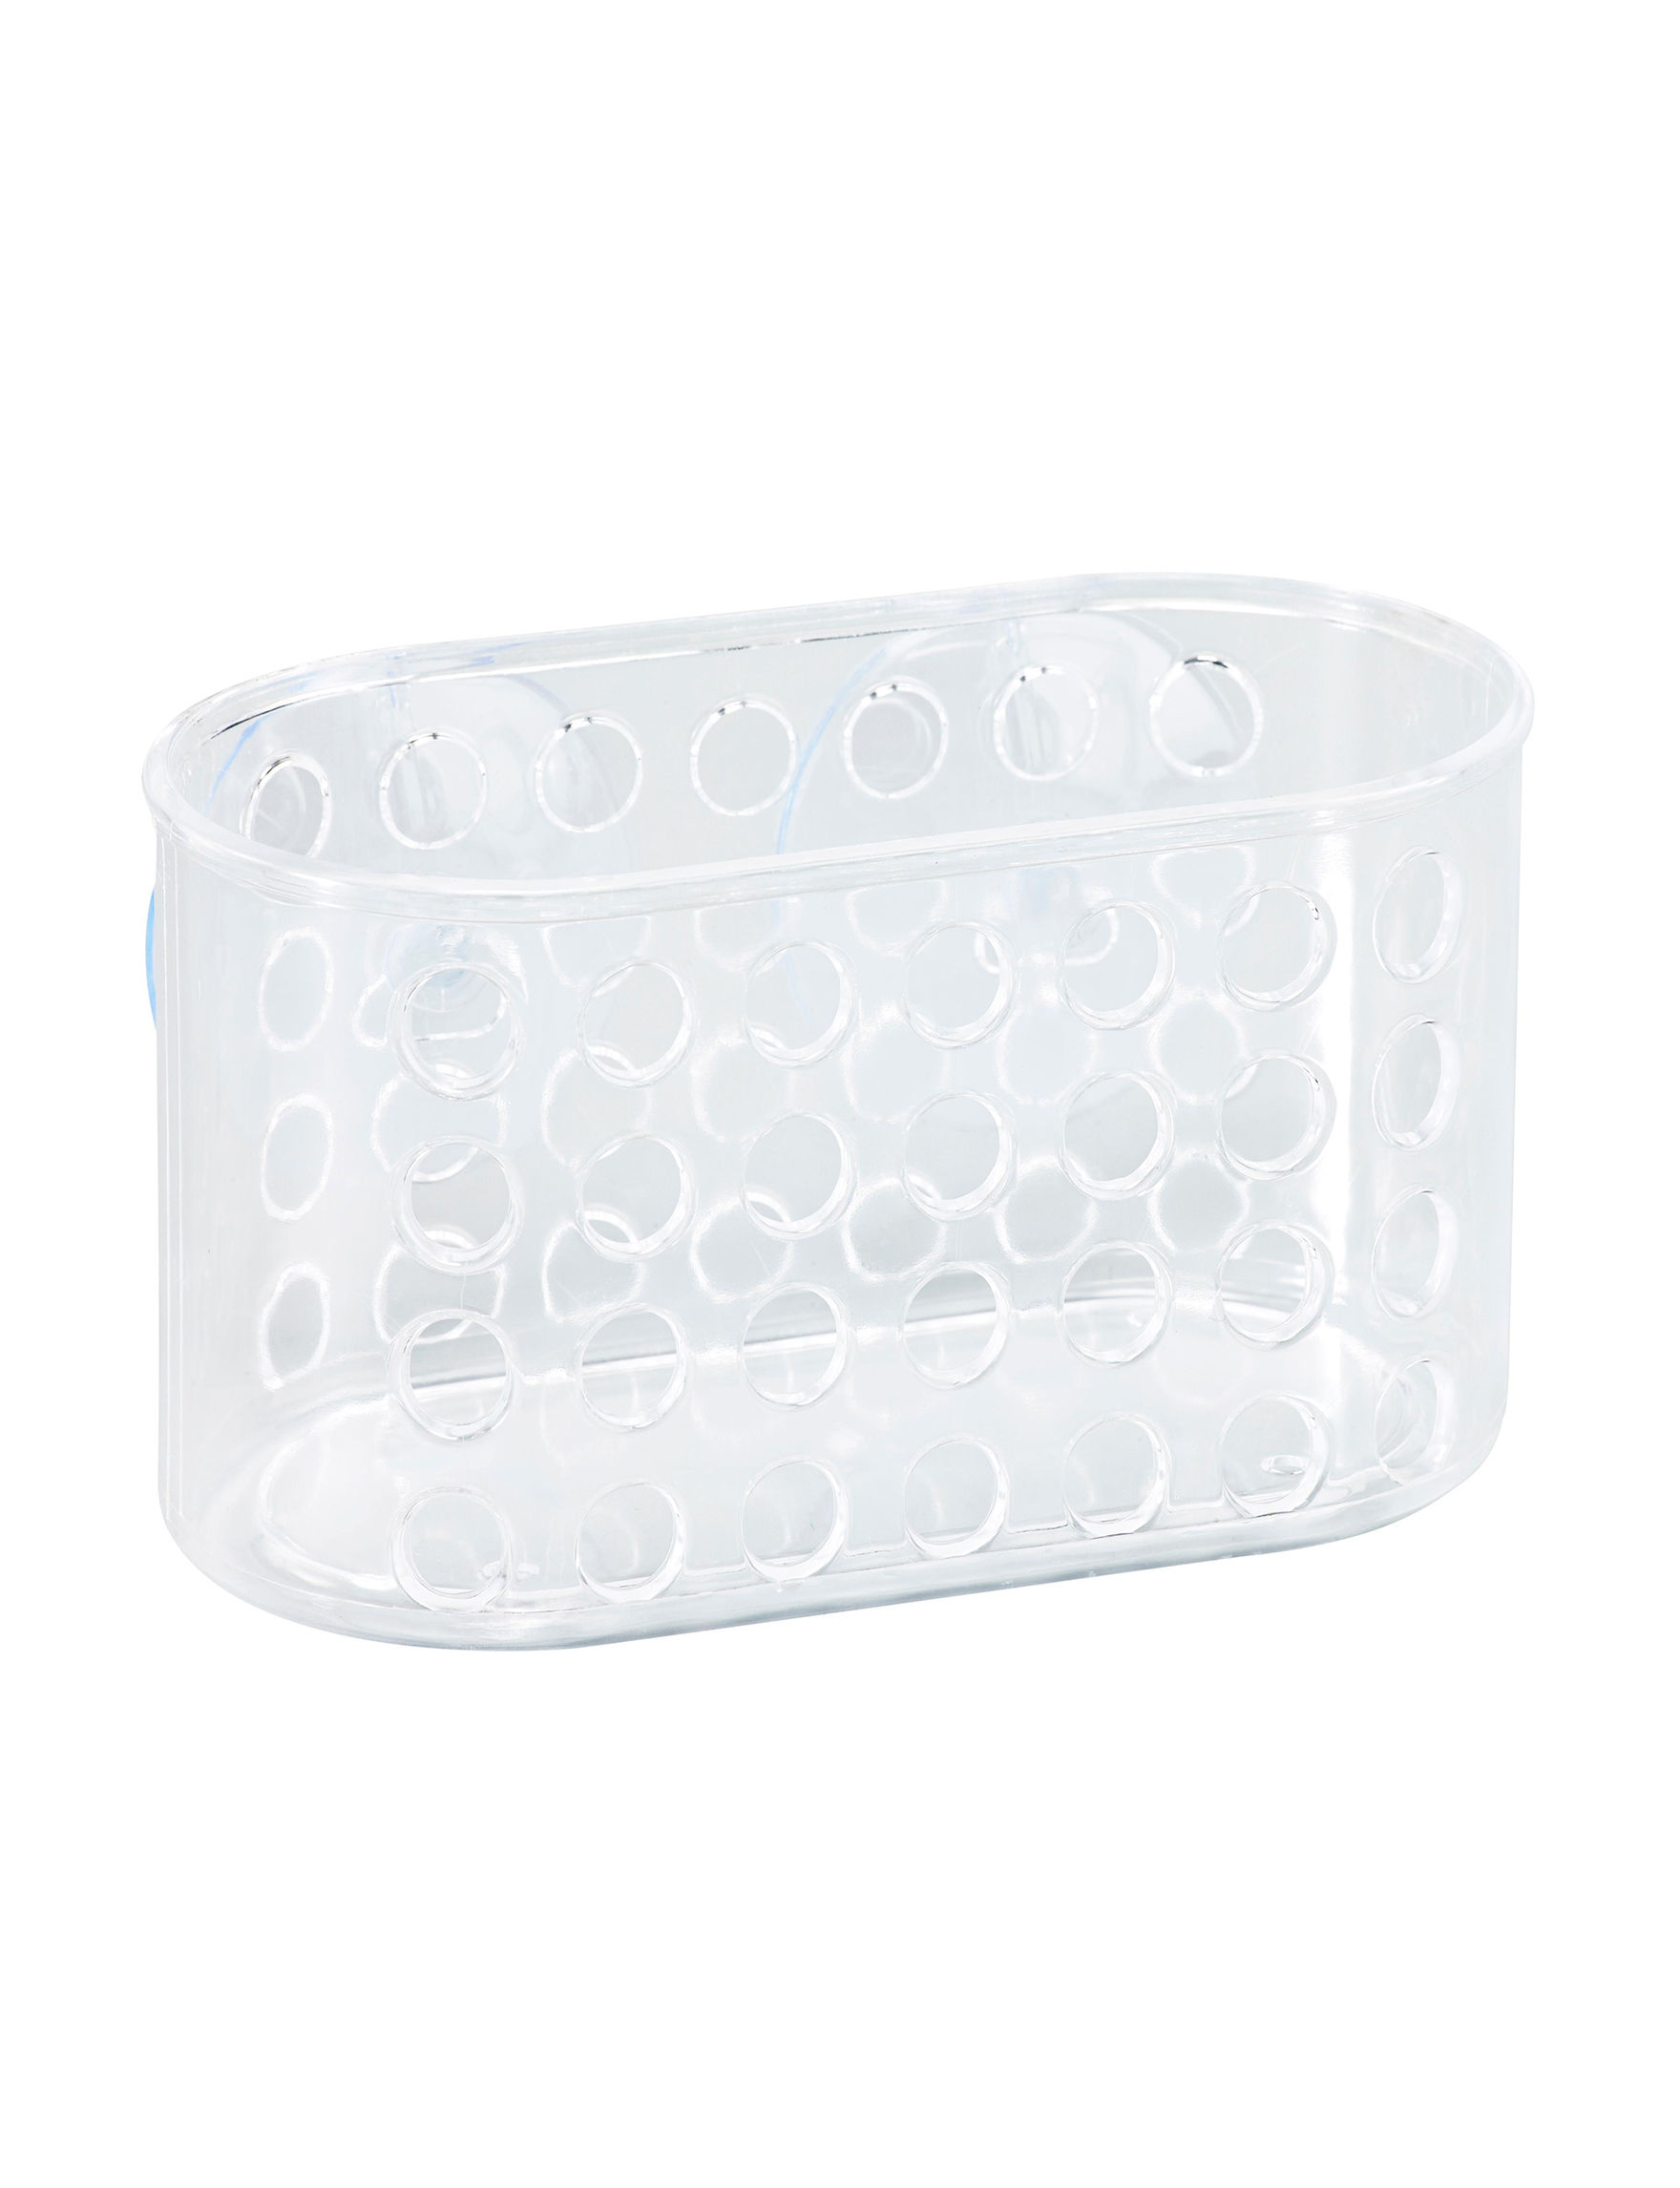 Bath Bliss Clear Bath Accessories